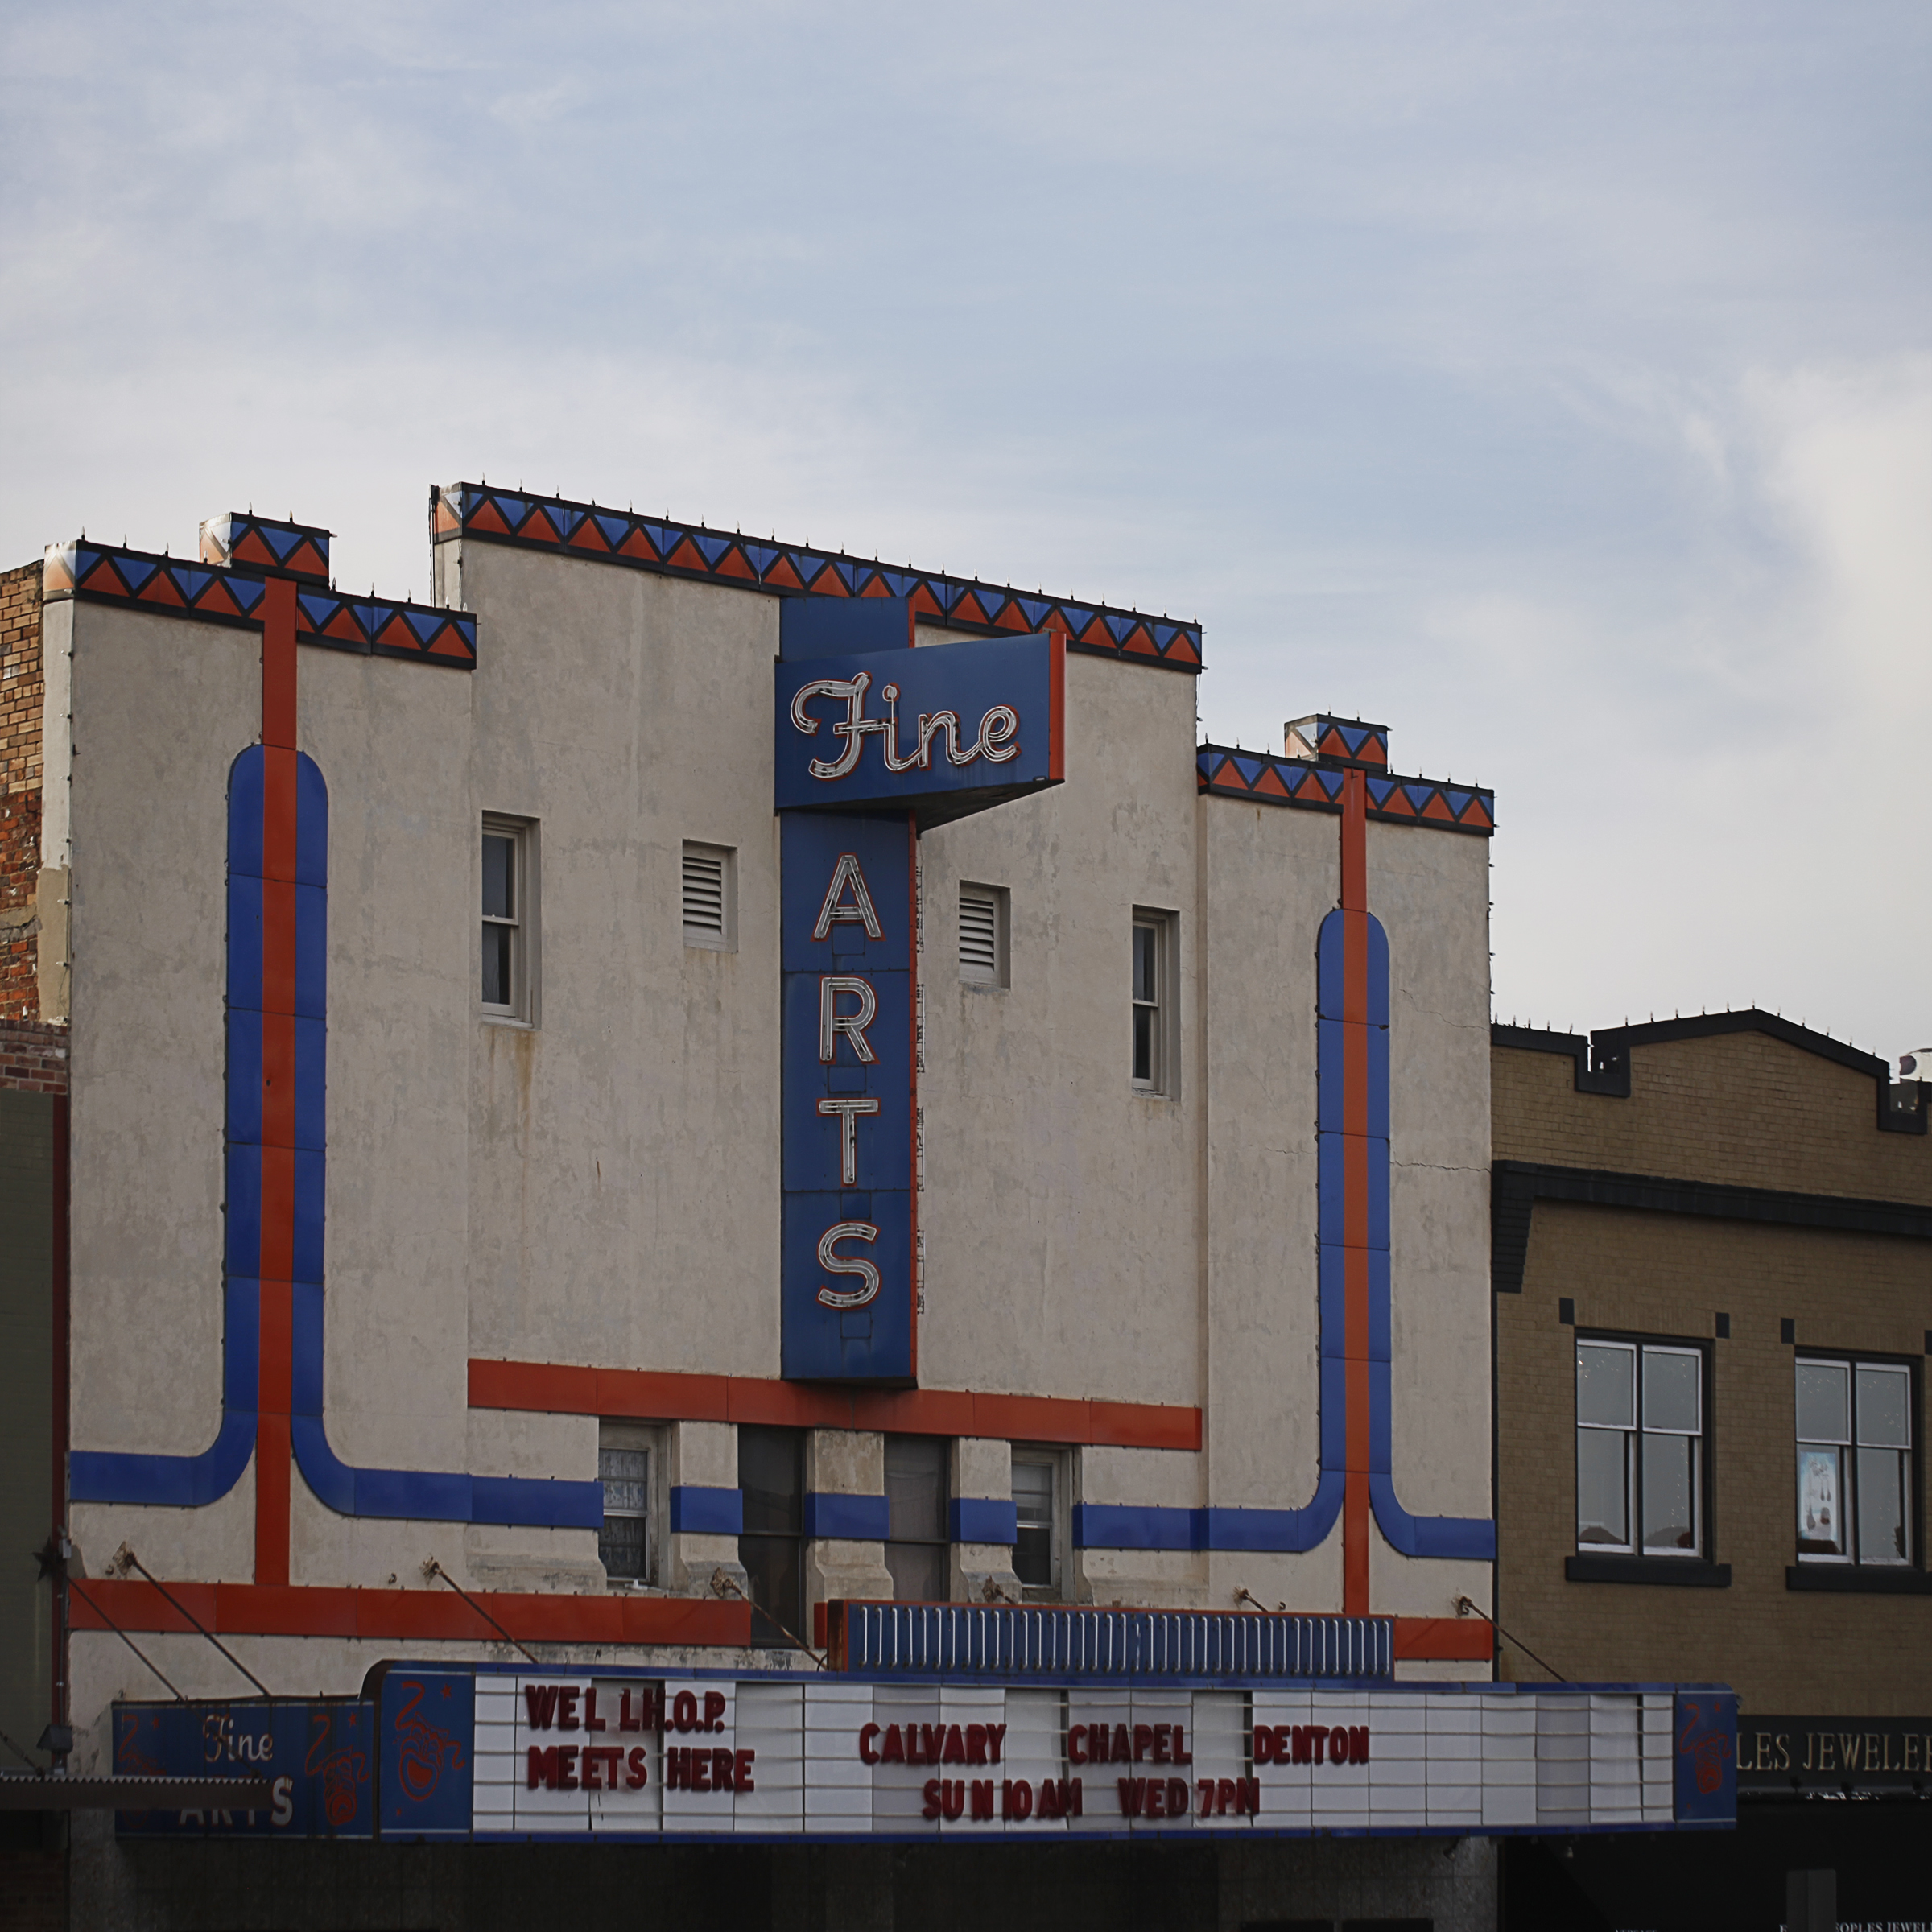 The Fine Arts Theatre will soon be showing movies.